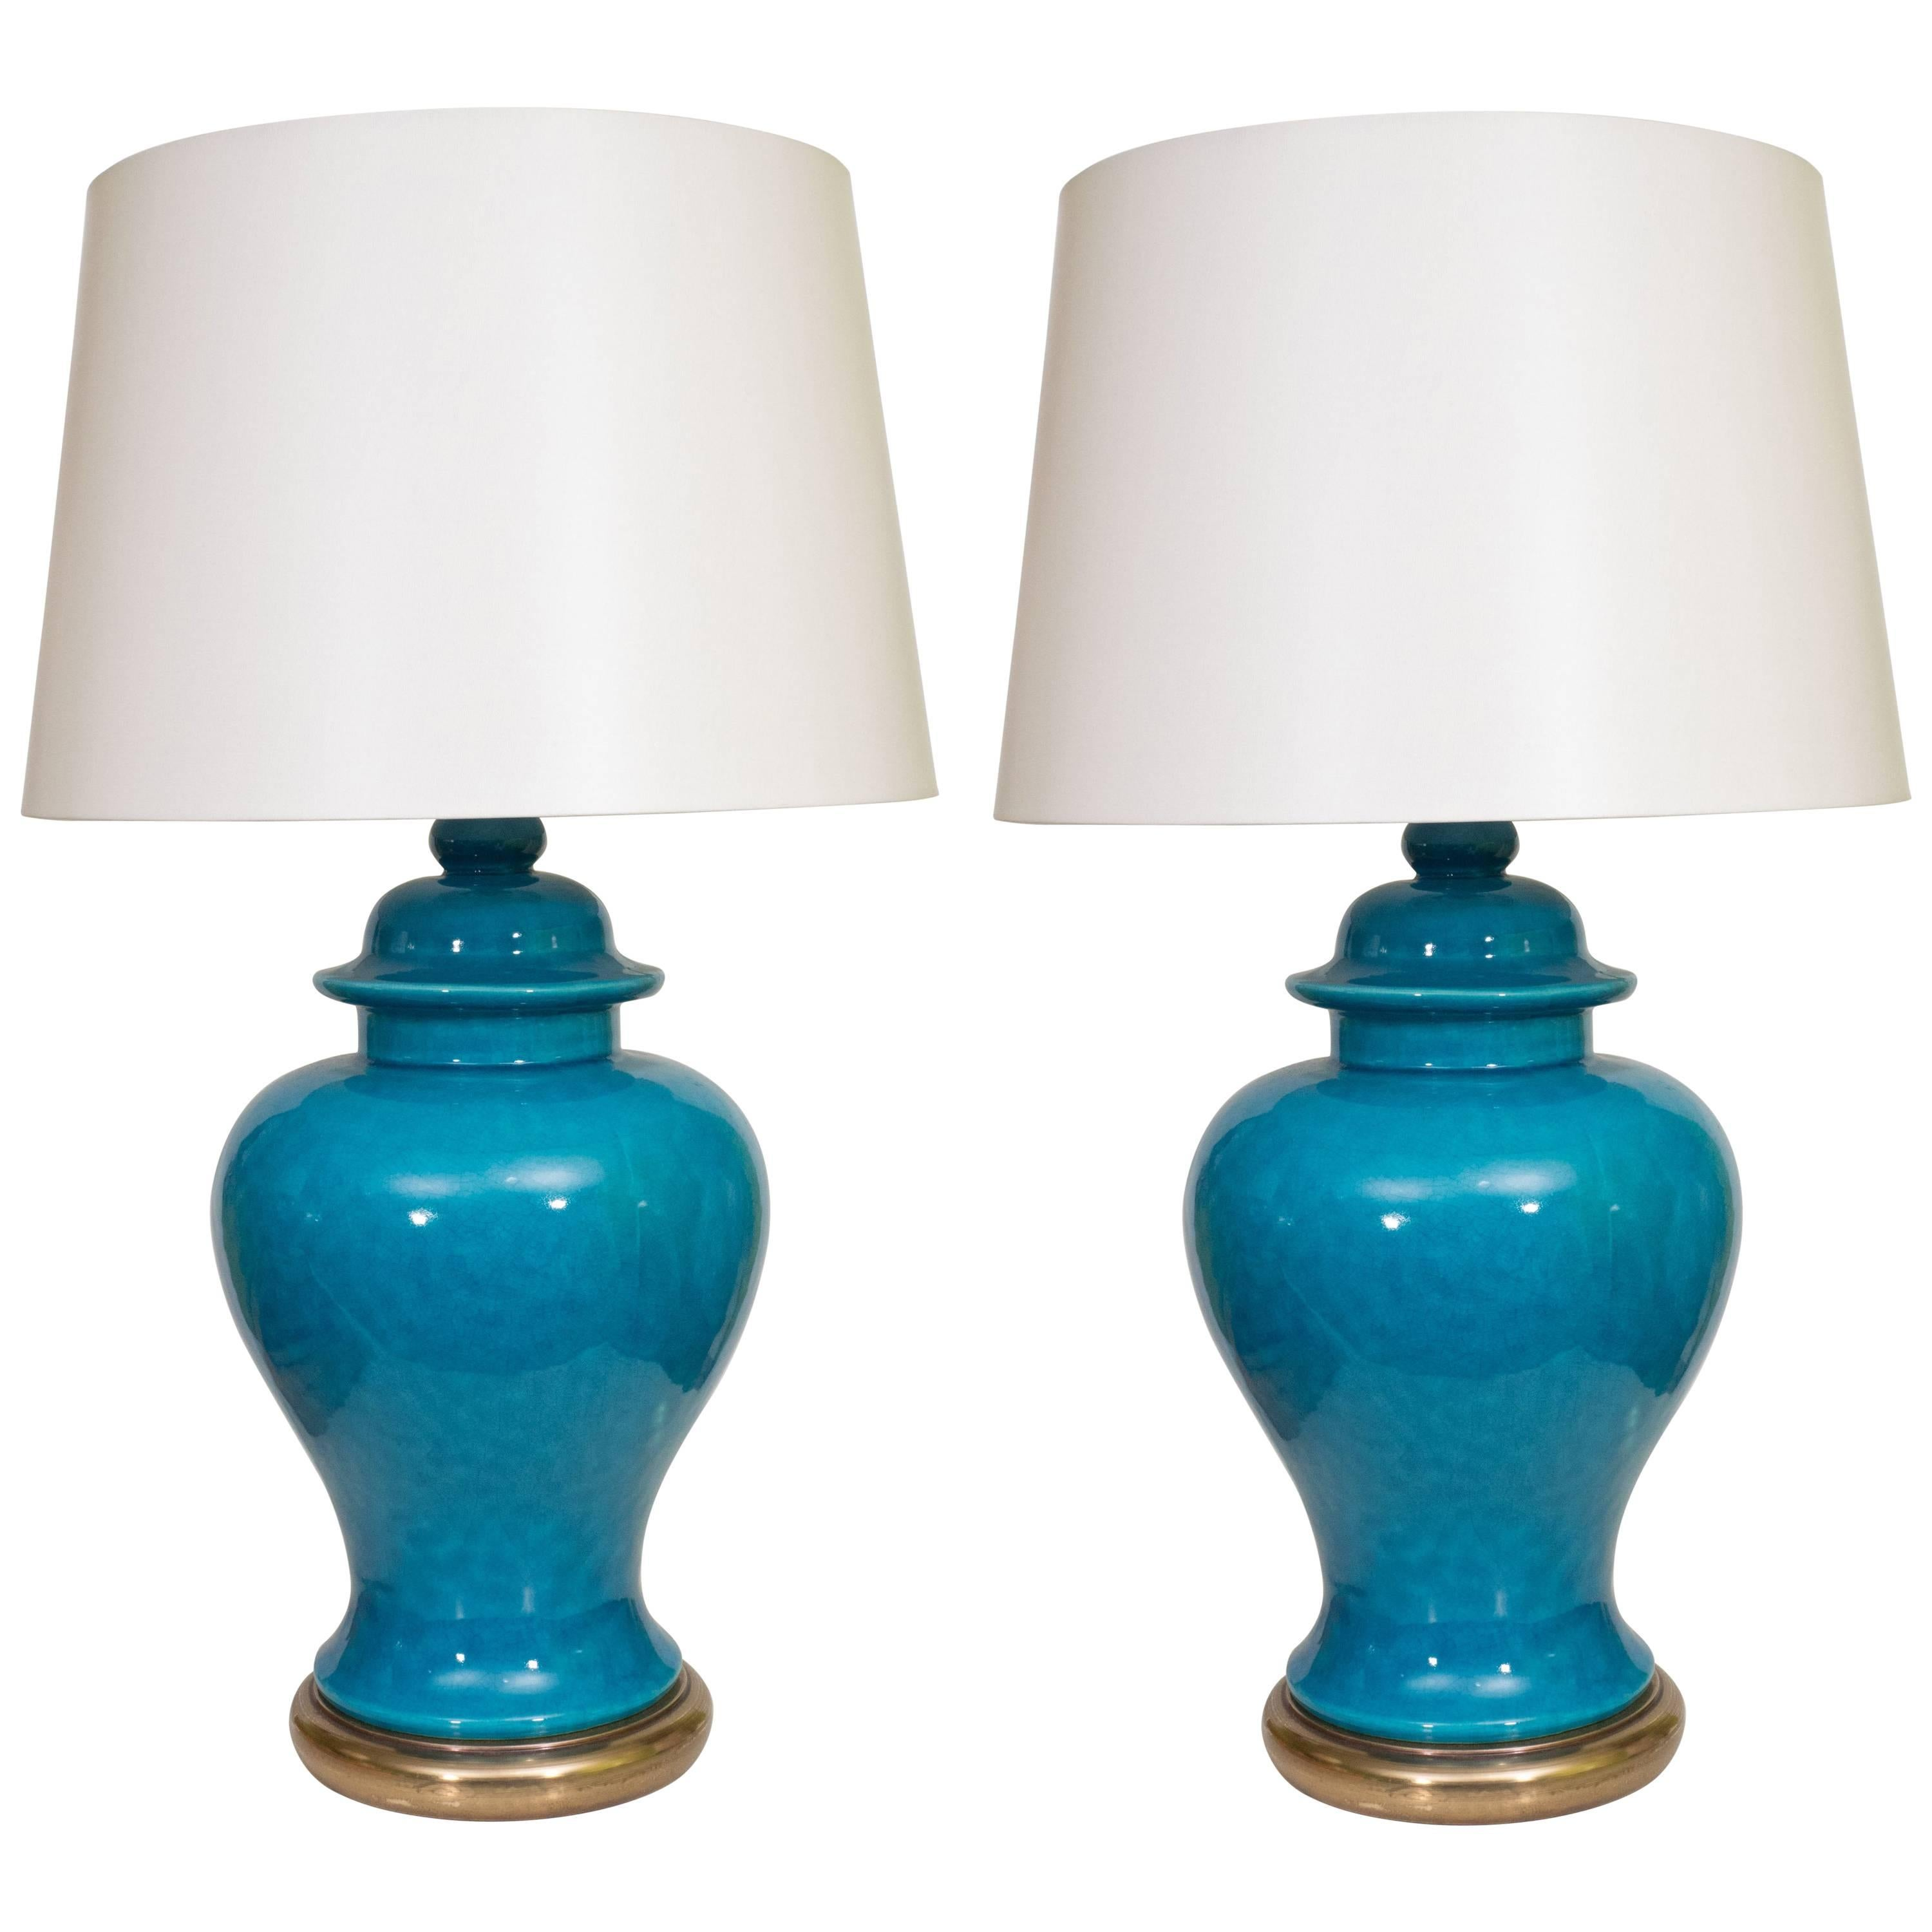 Pair Of Mid Century Blue Glass Lamps For Sale At 1stdibs